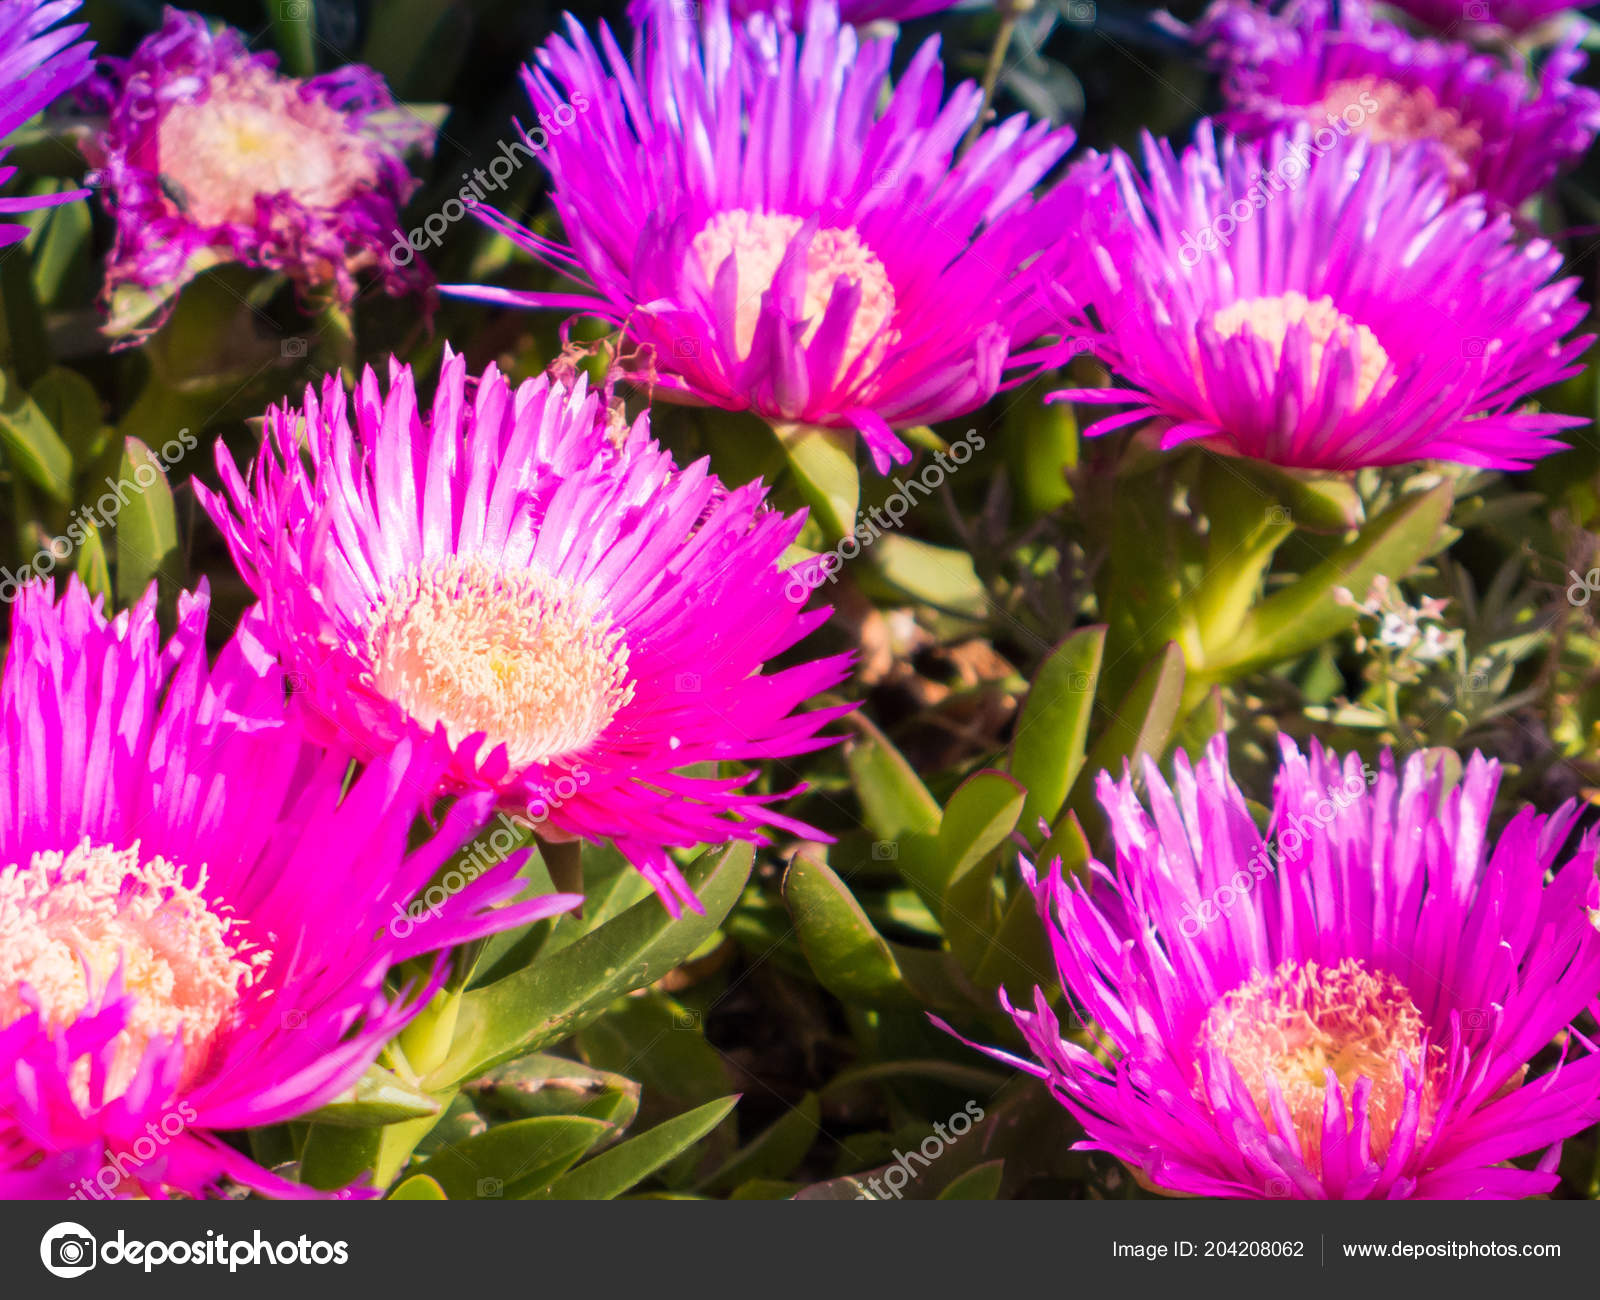 Carpobrotus genus ground creeping plants succulent leaves large carpobrotus is a genus of ground creeping plants with succulent leaves and large daisy like flowers photo by digitalsignal izmirmasajfo